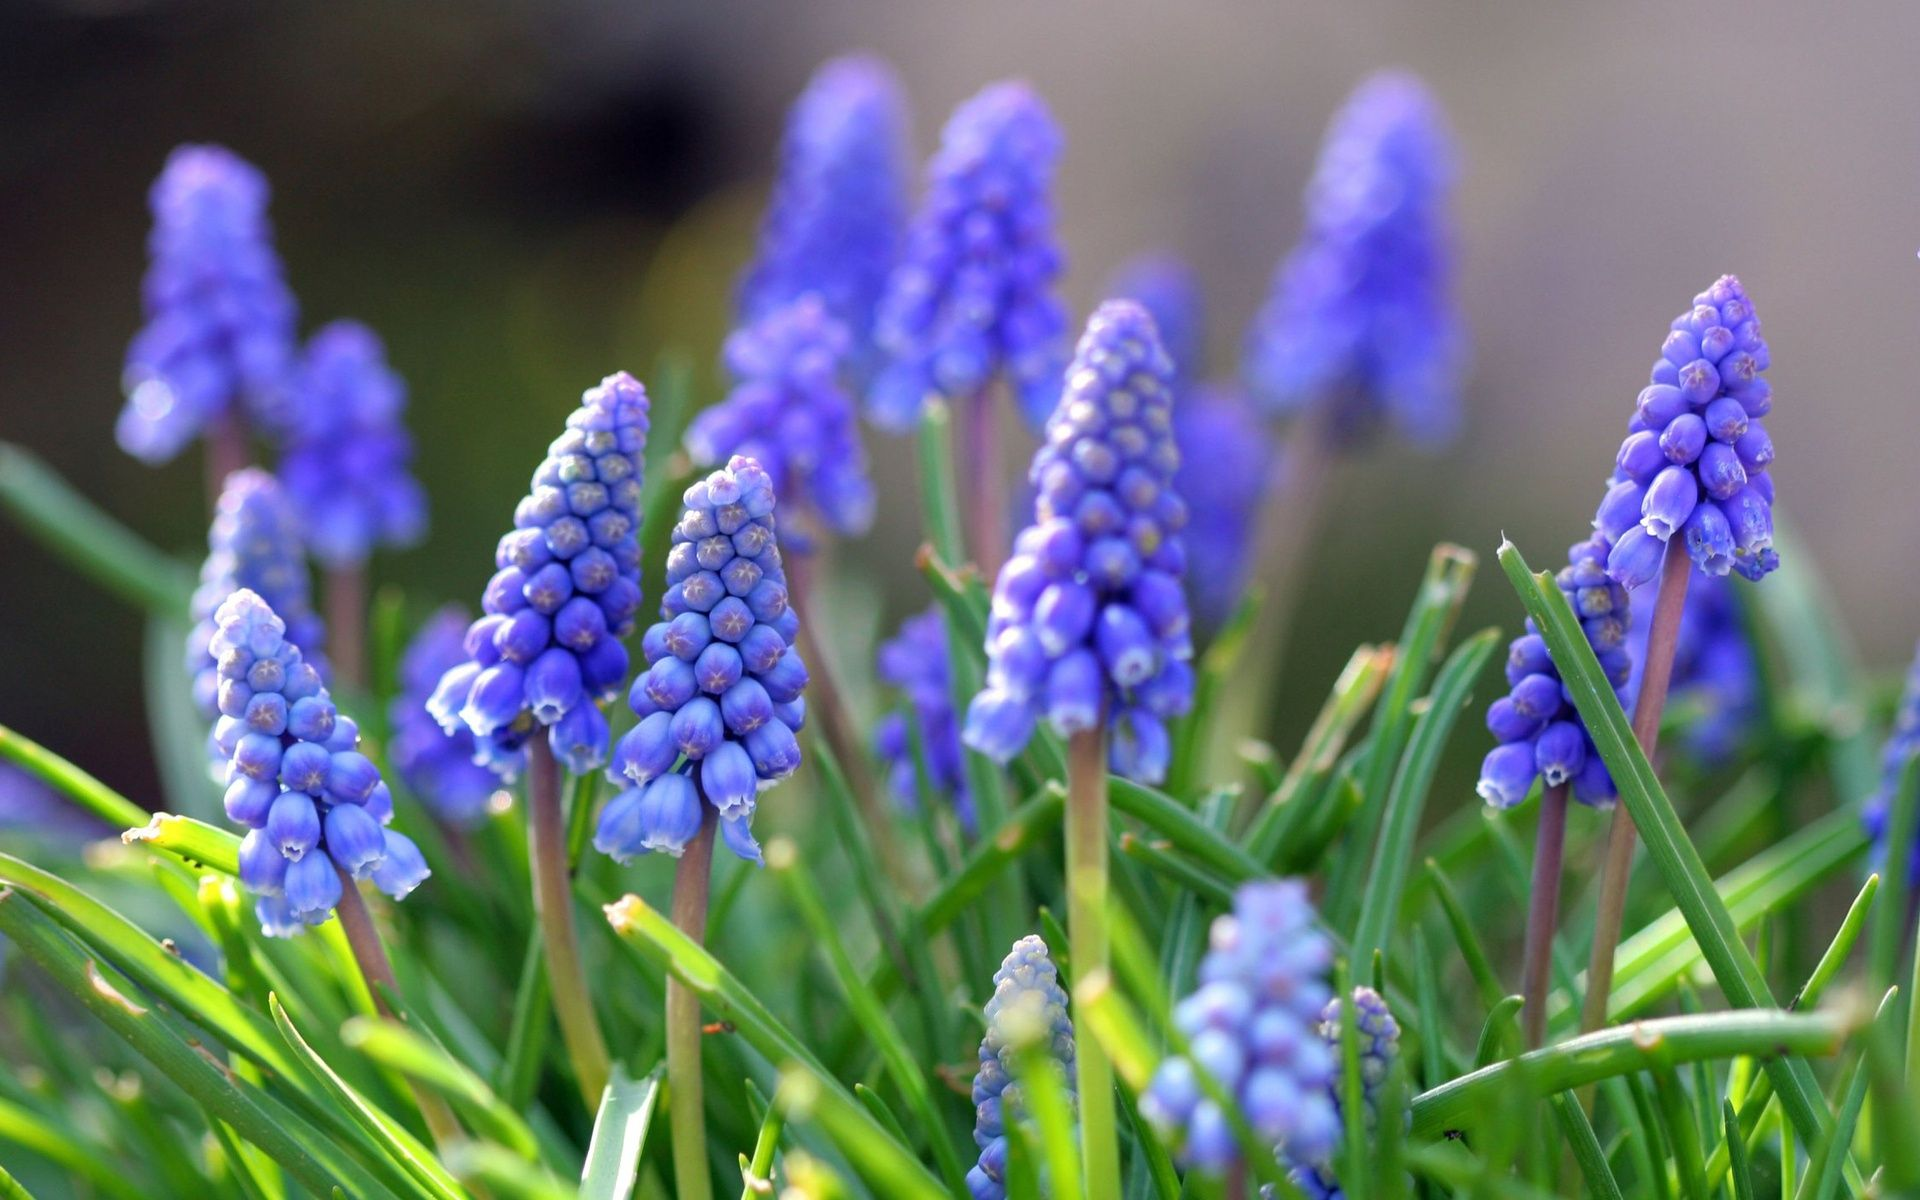 grape hyacinths muscari are a lovely blue spring flower plant the